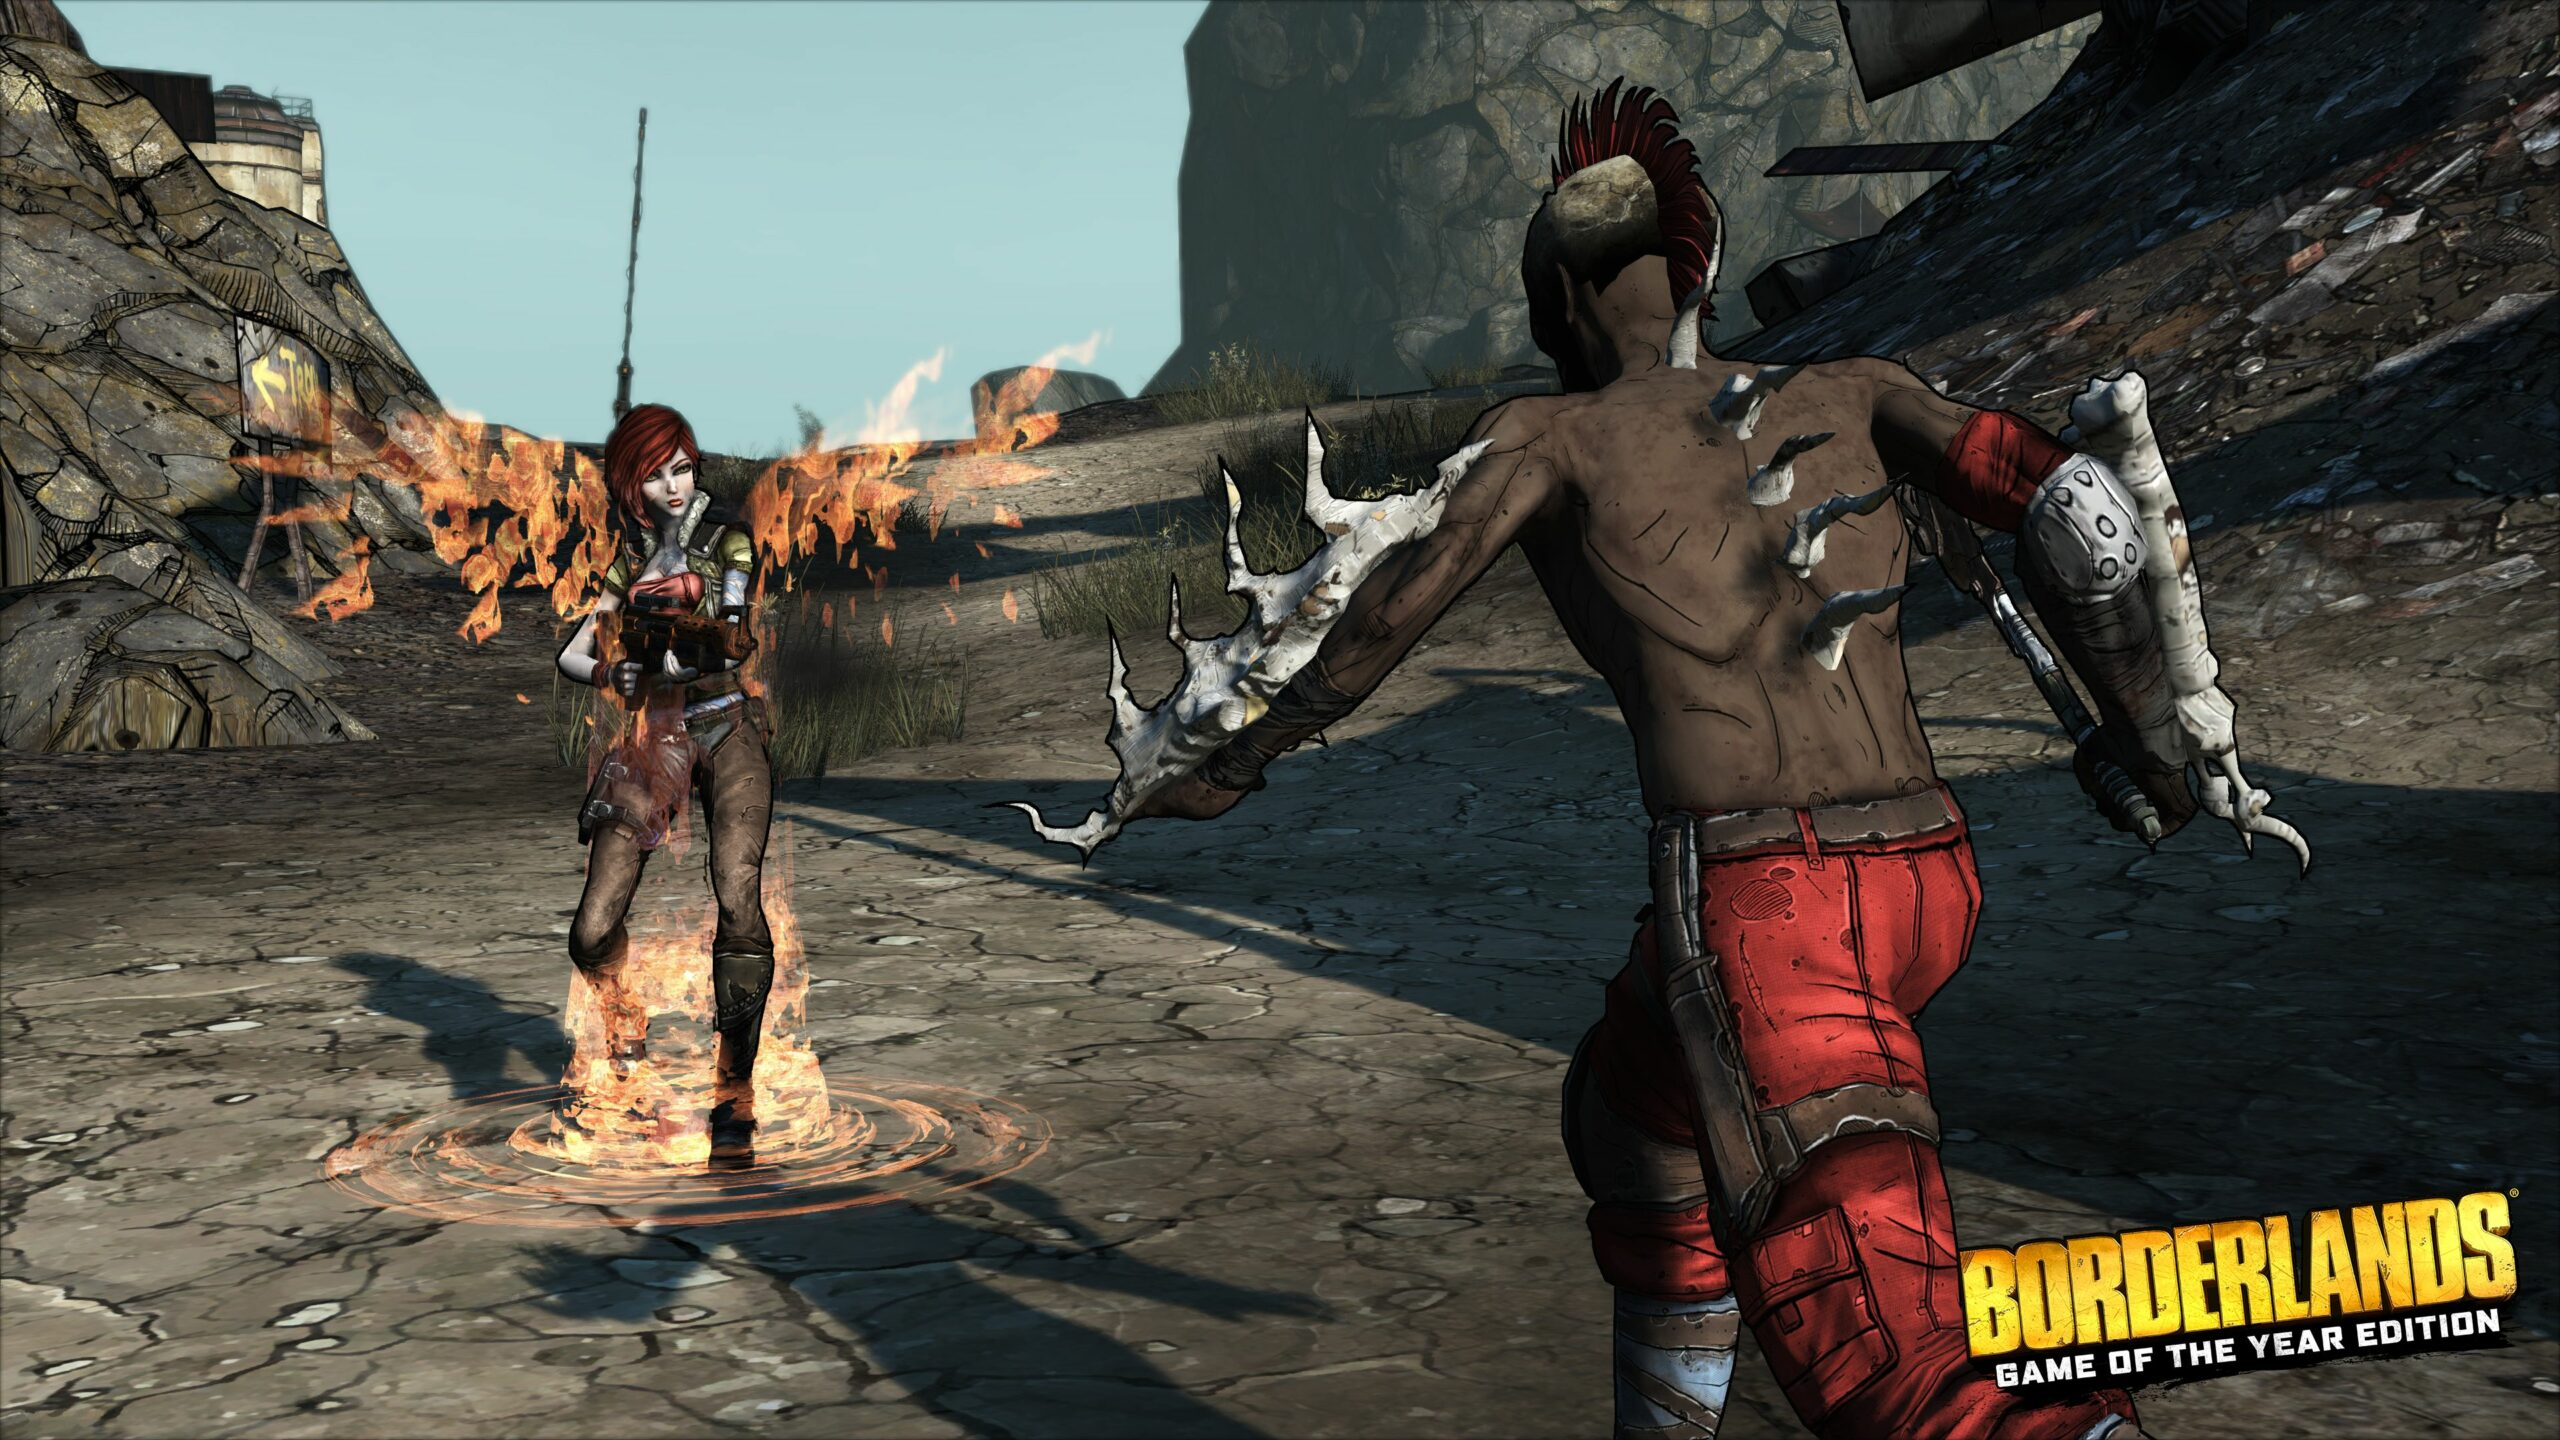 Borderlands-Game-of-the-Year-Edition_2019_03-28-19_002